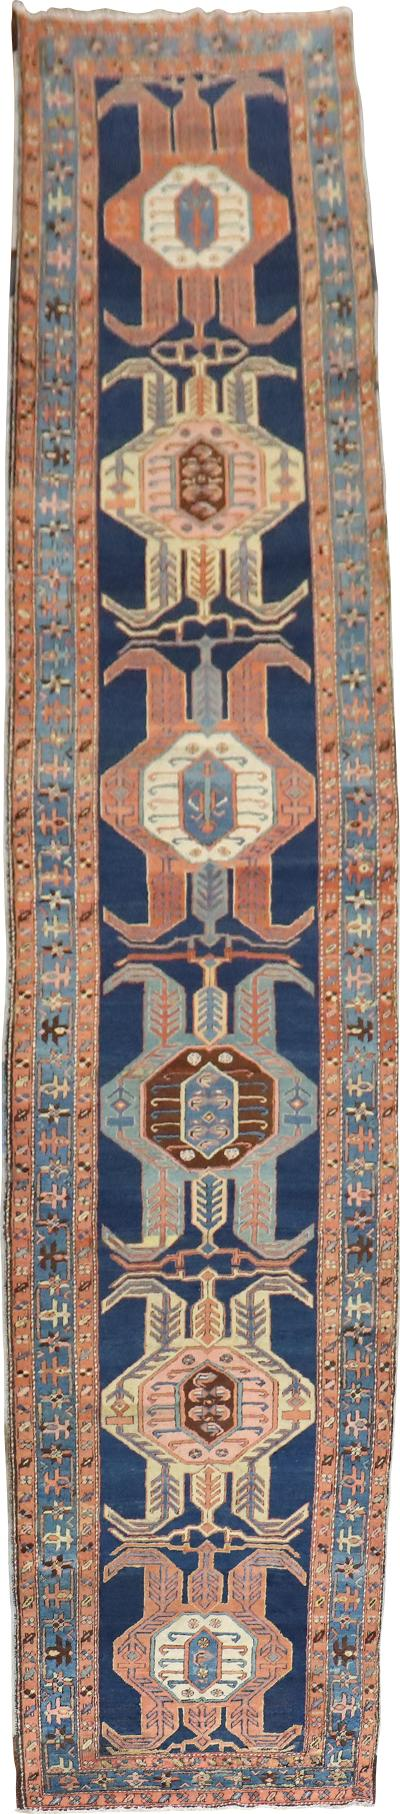 Blue Tribal Serapi Heriz Runner rug no j1988